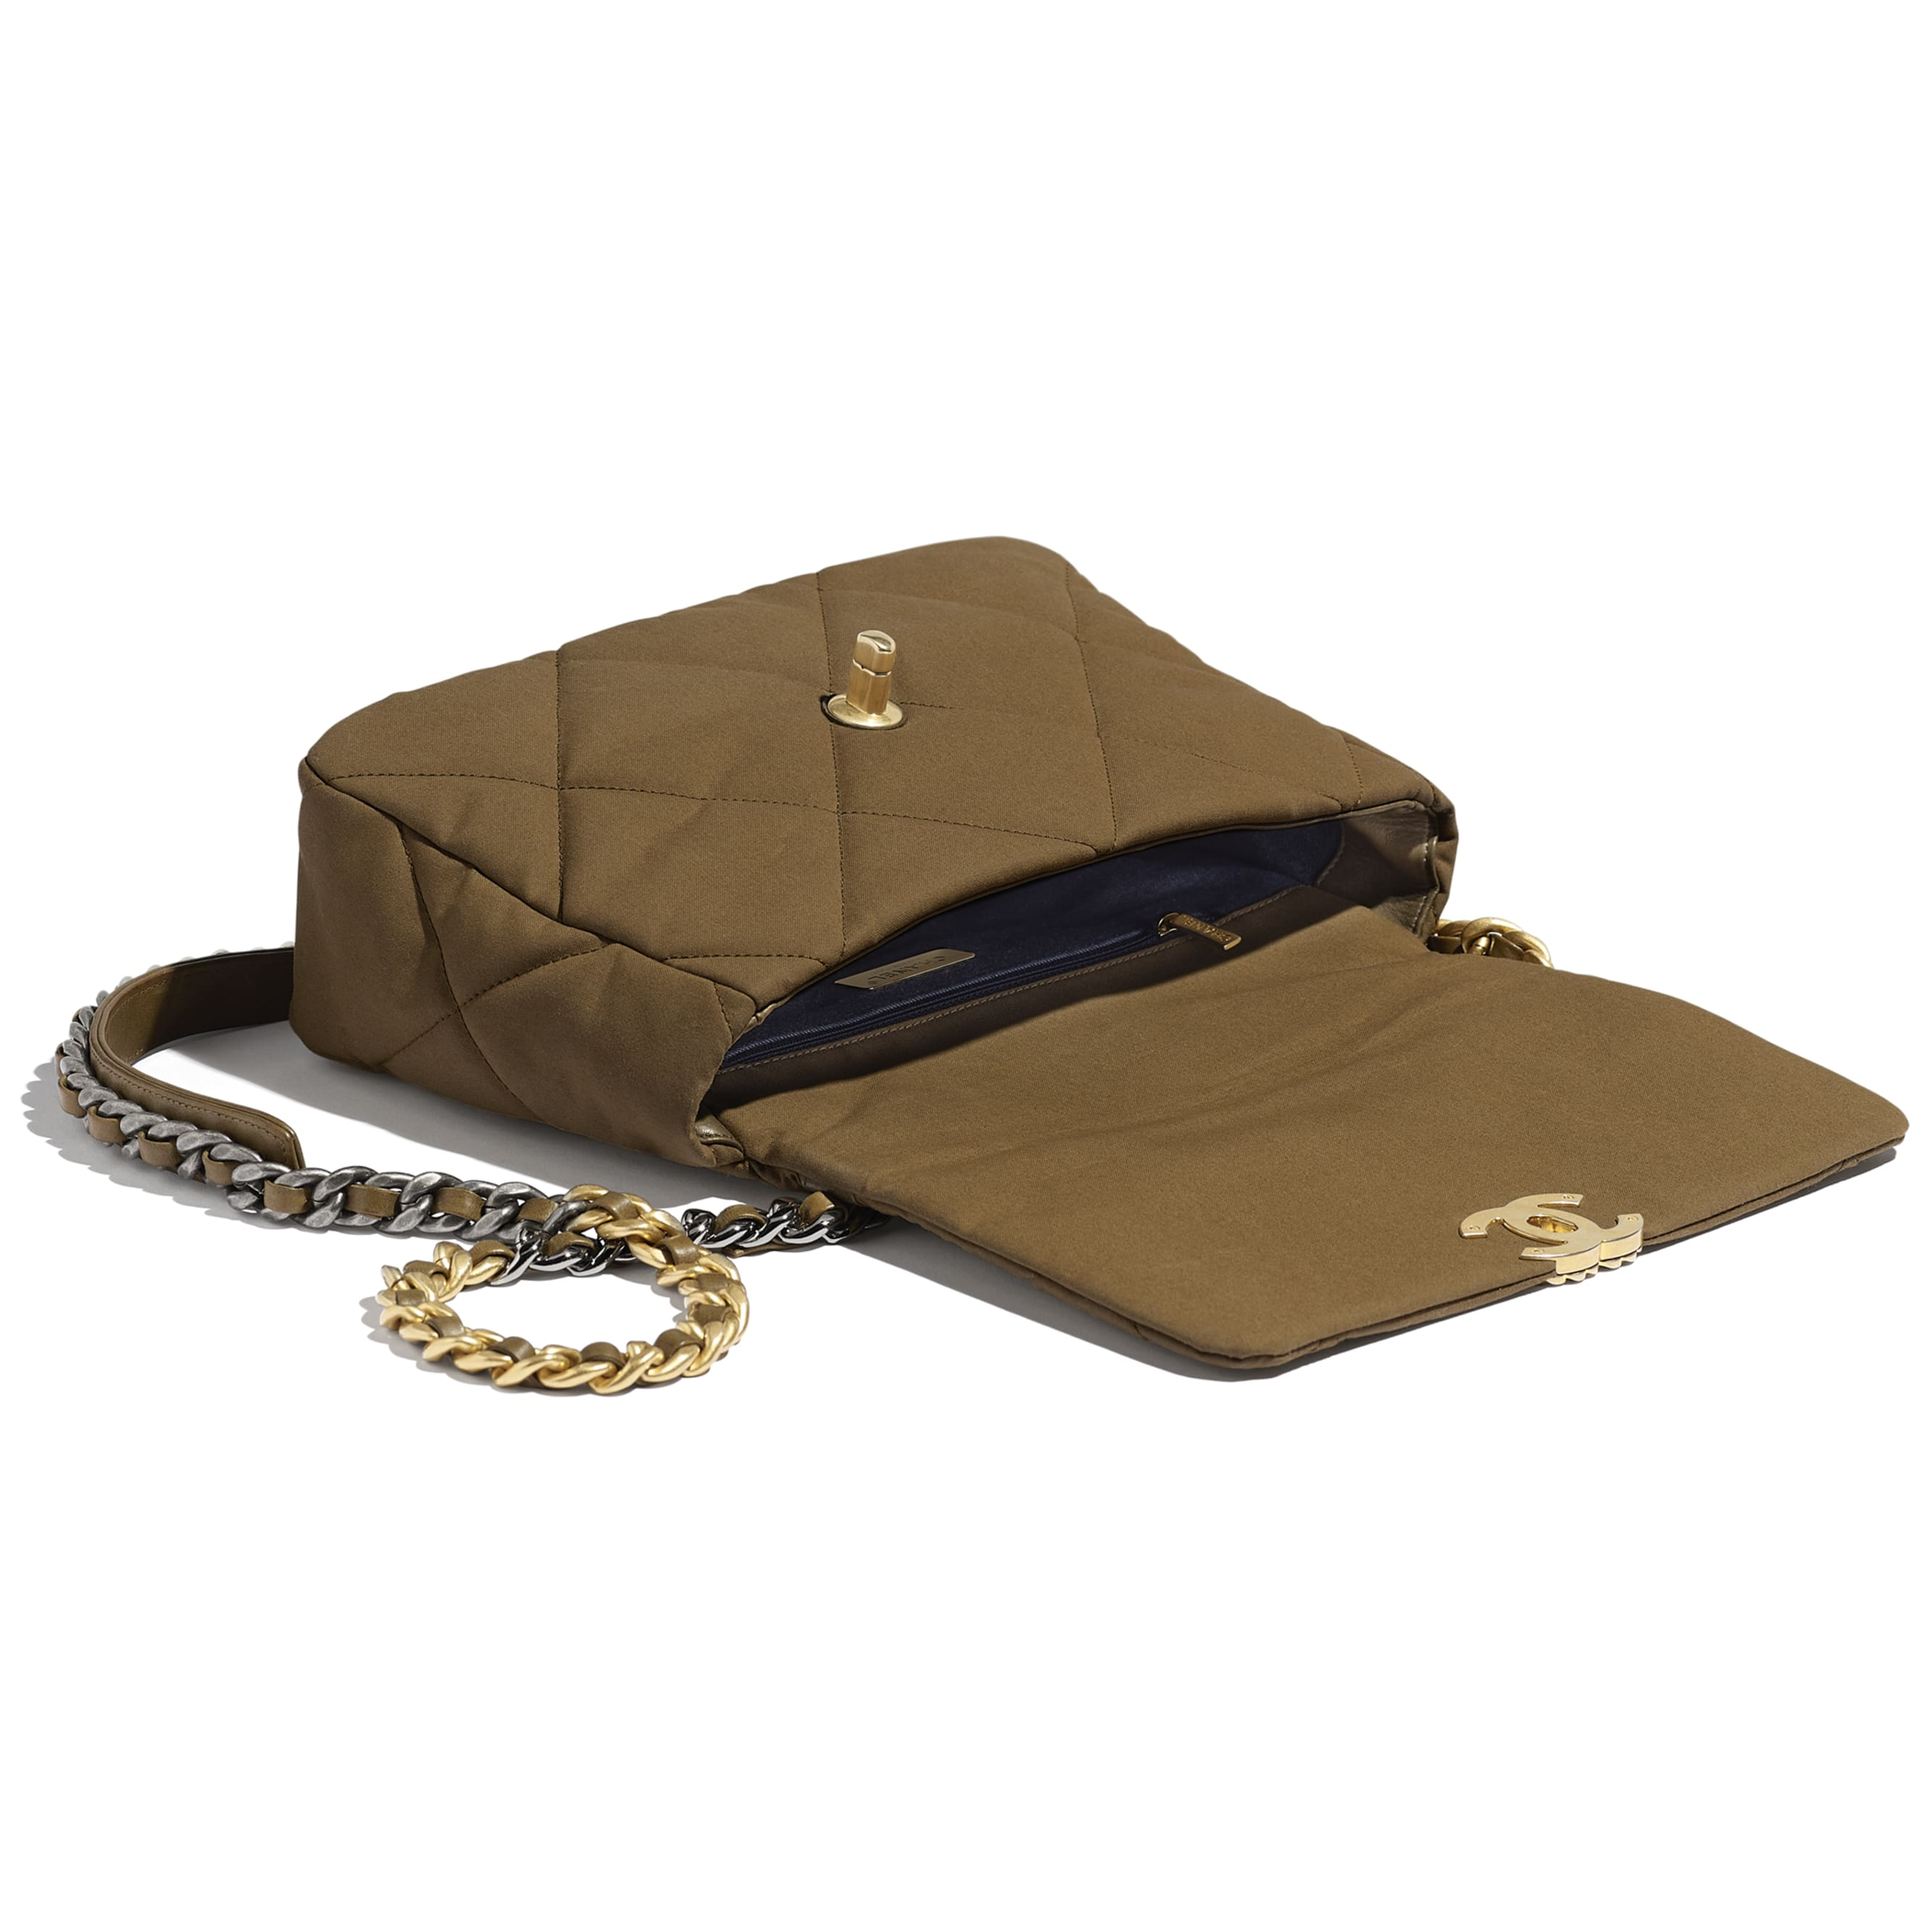 CHANEL 19 Large Flap Bag - Bronze - Cotton Canvas, Calfskin, Gold-Tone, Silver-Tone & Ruthenium-Finish Metal - CHANEL - Other view - see standard sized version